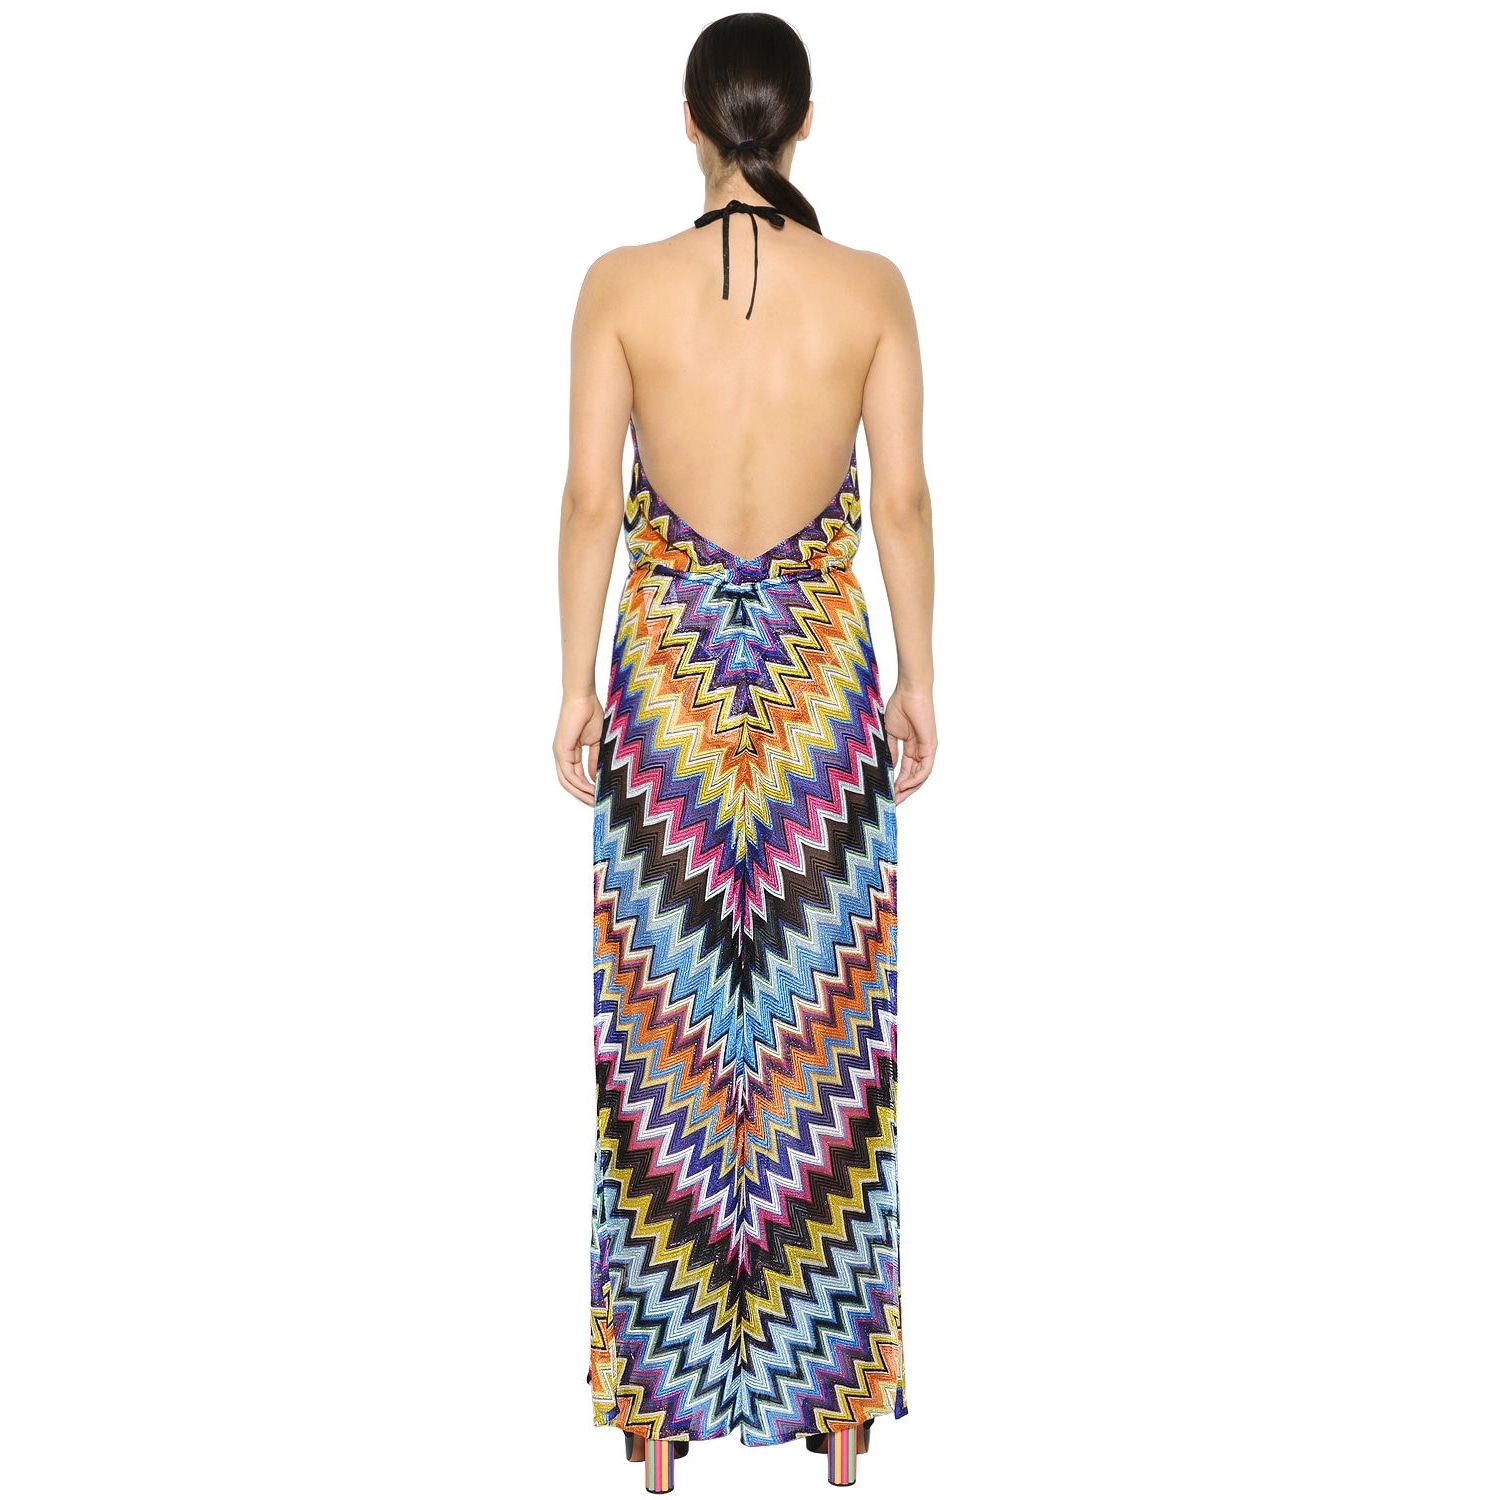 855c9fbdf0 Shop Missoni Women's Lurex Multicolor Rayon Wide-leg Zig-zag Jumpsuit -  Free Shipping Today - Overstock - 14483589